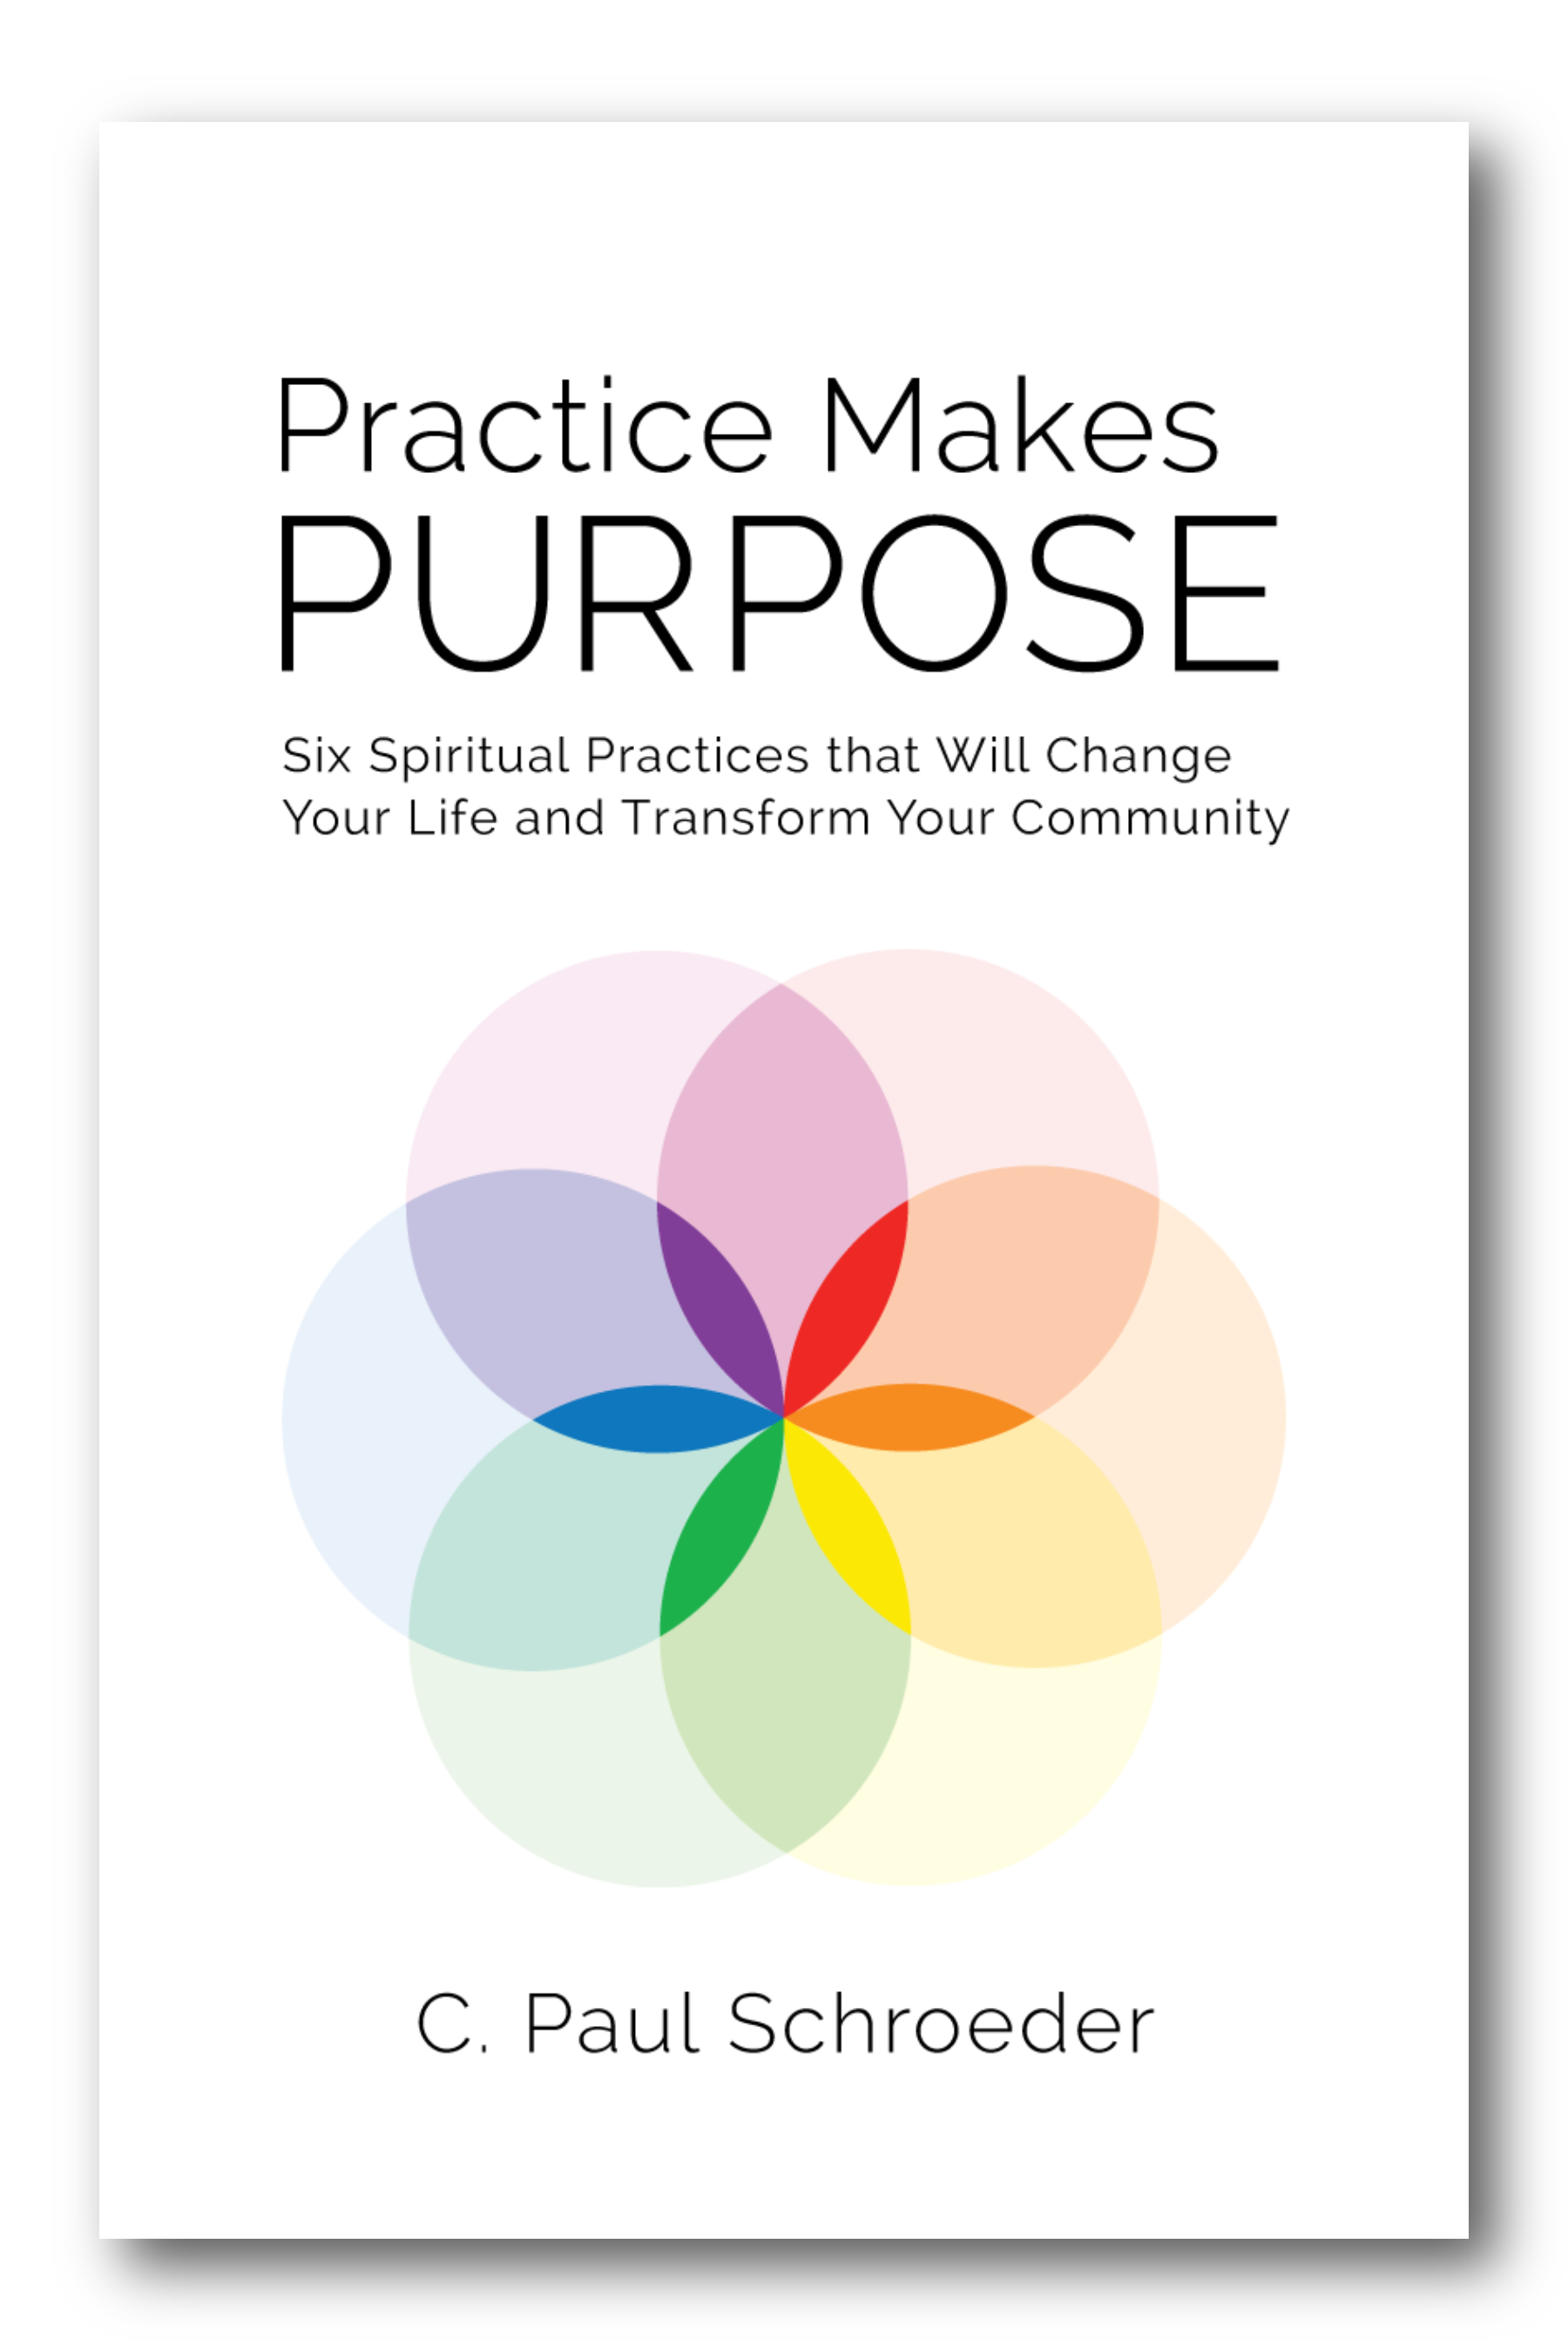 This article by C. Paul Schroeder is an adapted chapter excerpt from  Practice Makes PURPOSE: Six Spiritual Practices That Will Change Your Life and Transform Your Community , published by Hexad Publishing, September 2017.